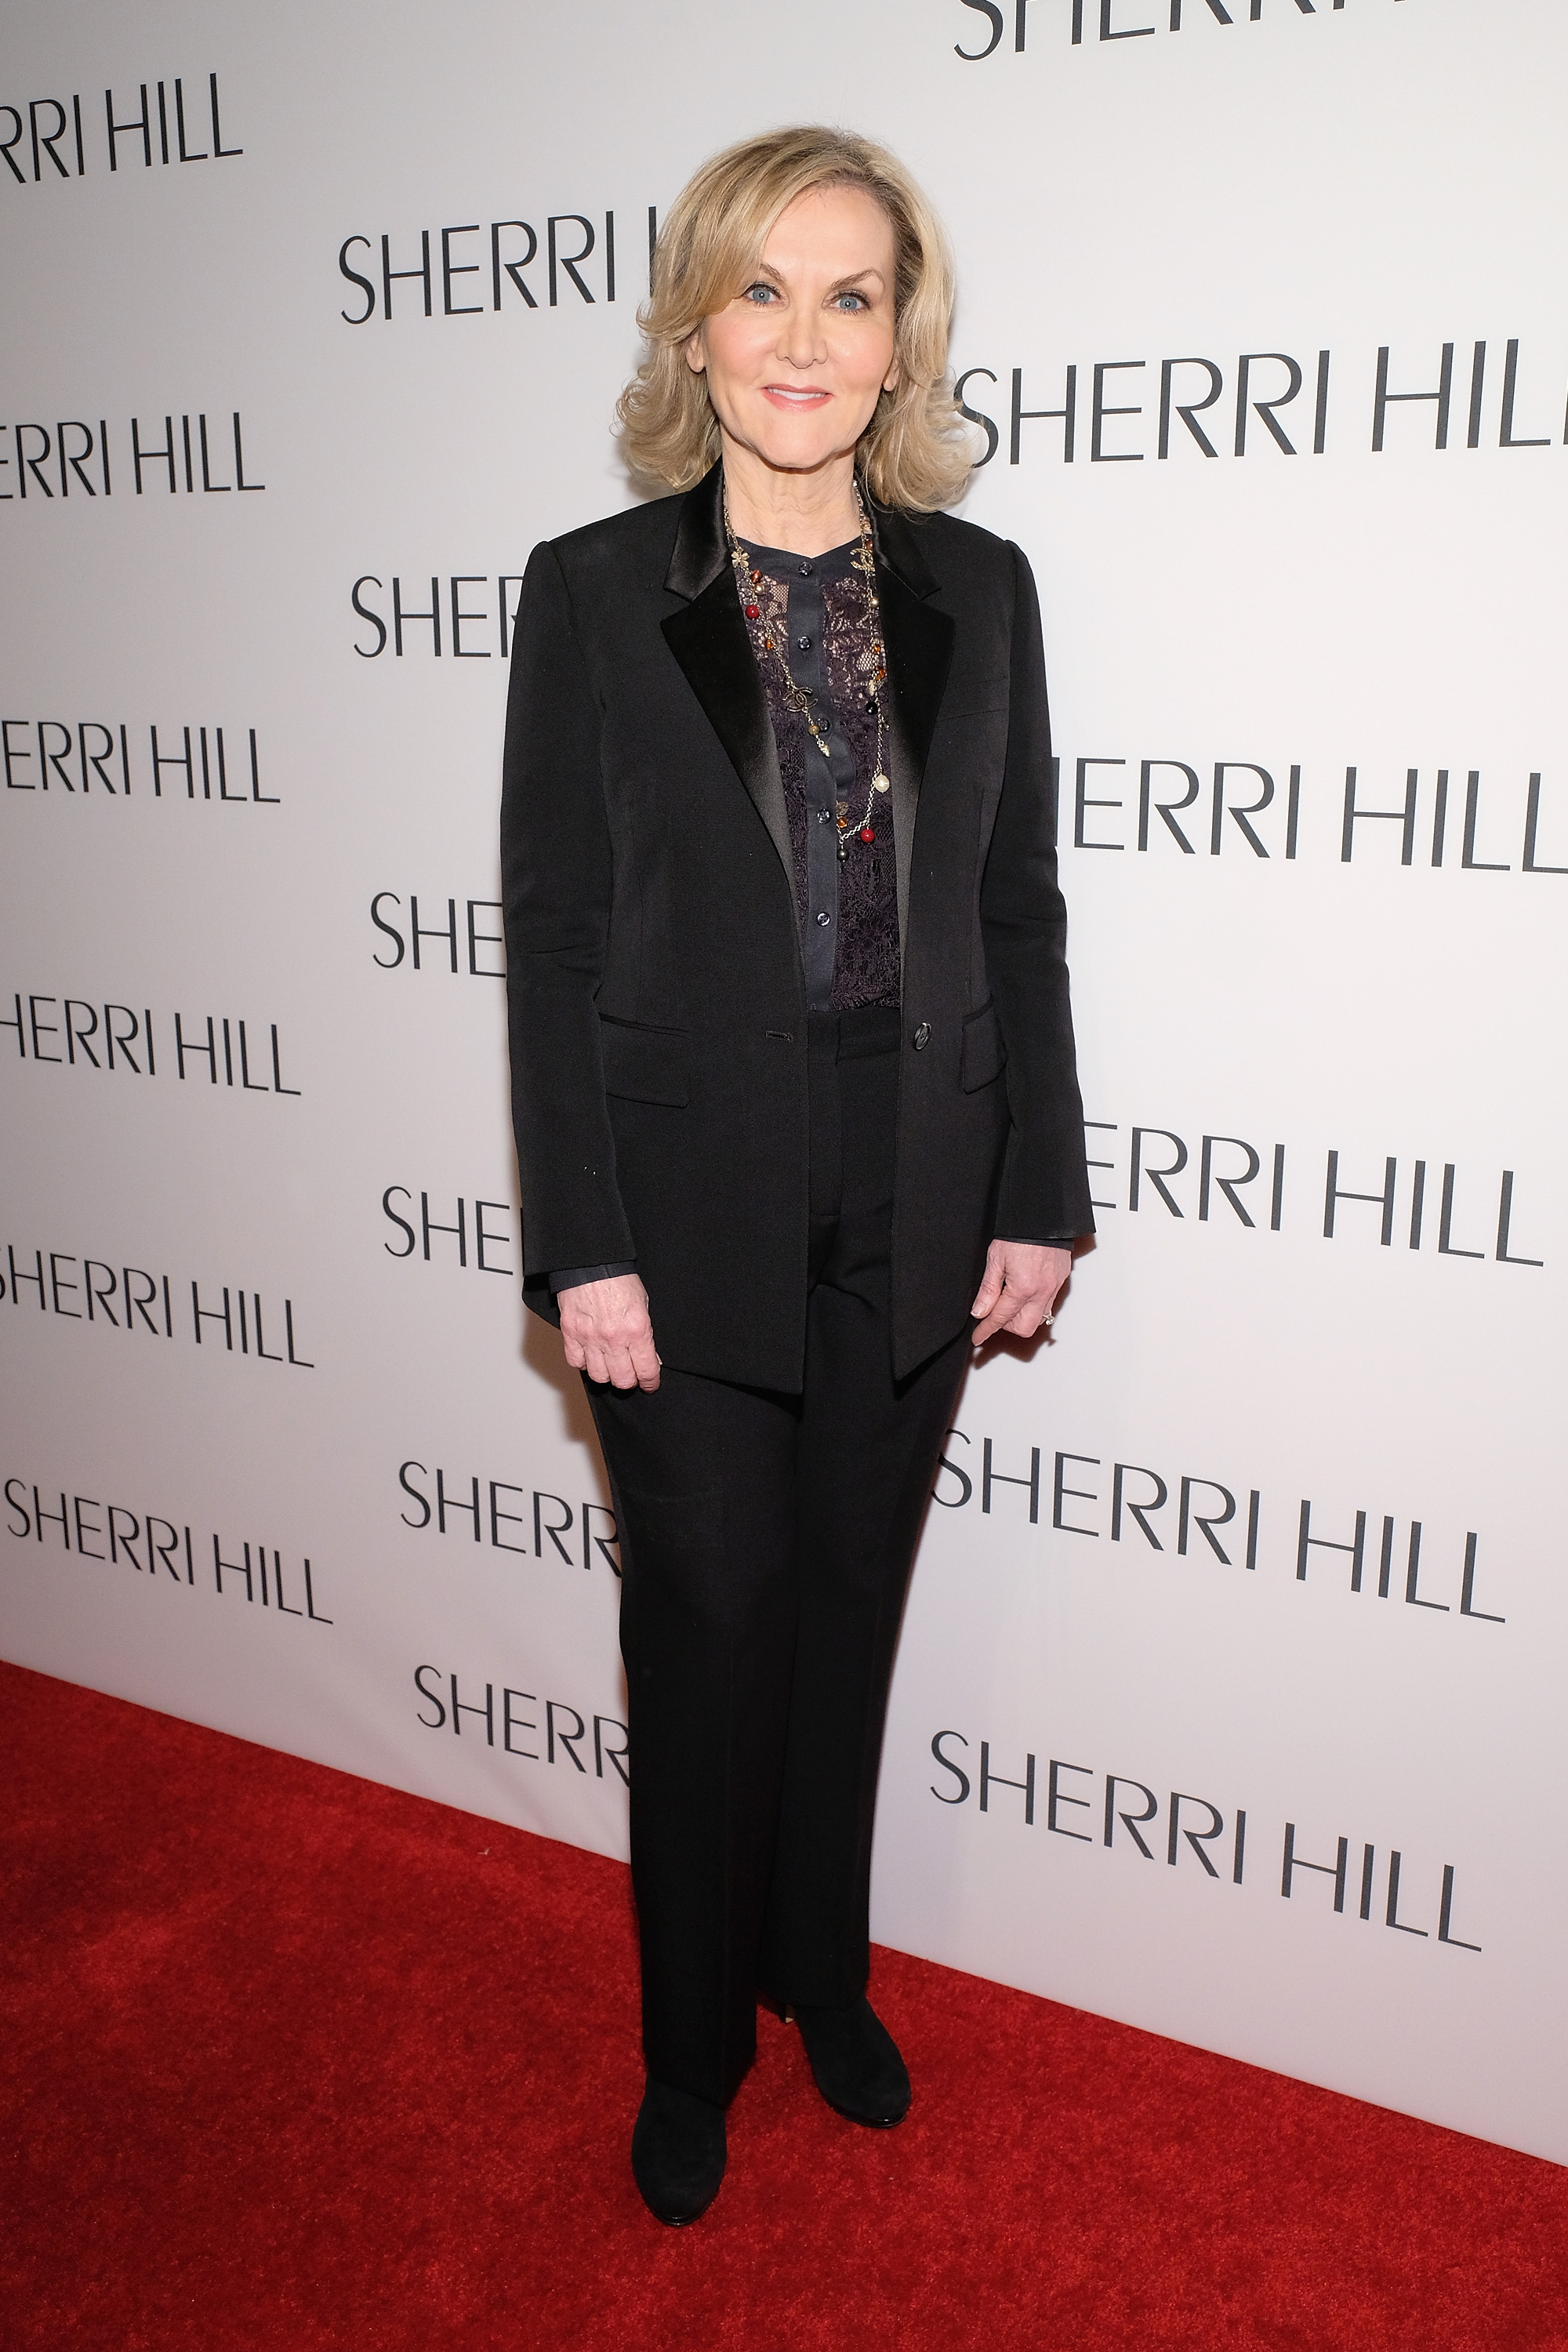 Sherri Hill - Arrivals - February 2017 - New York Fashion Week